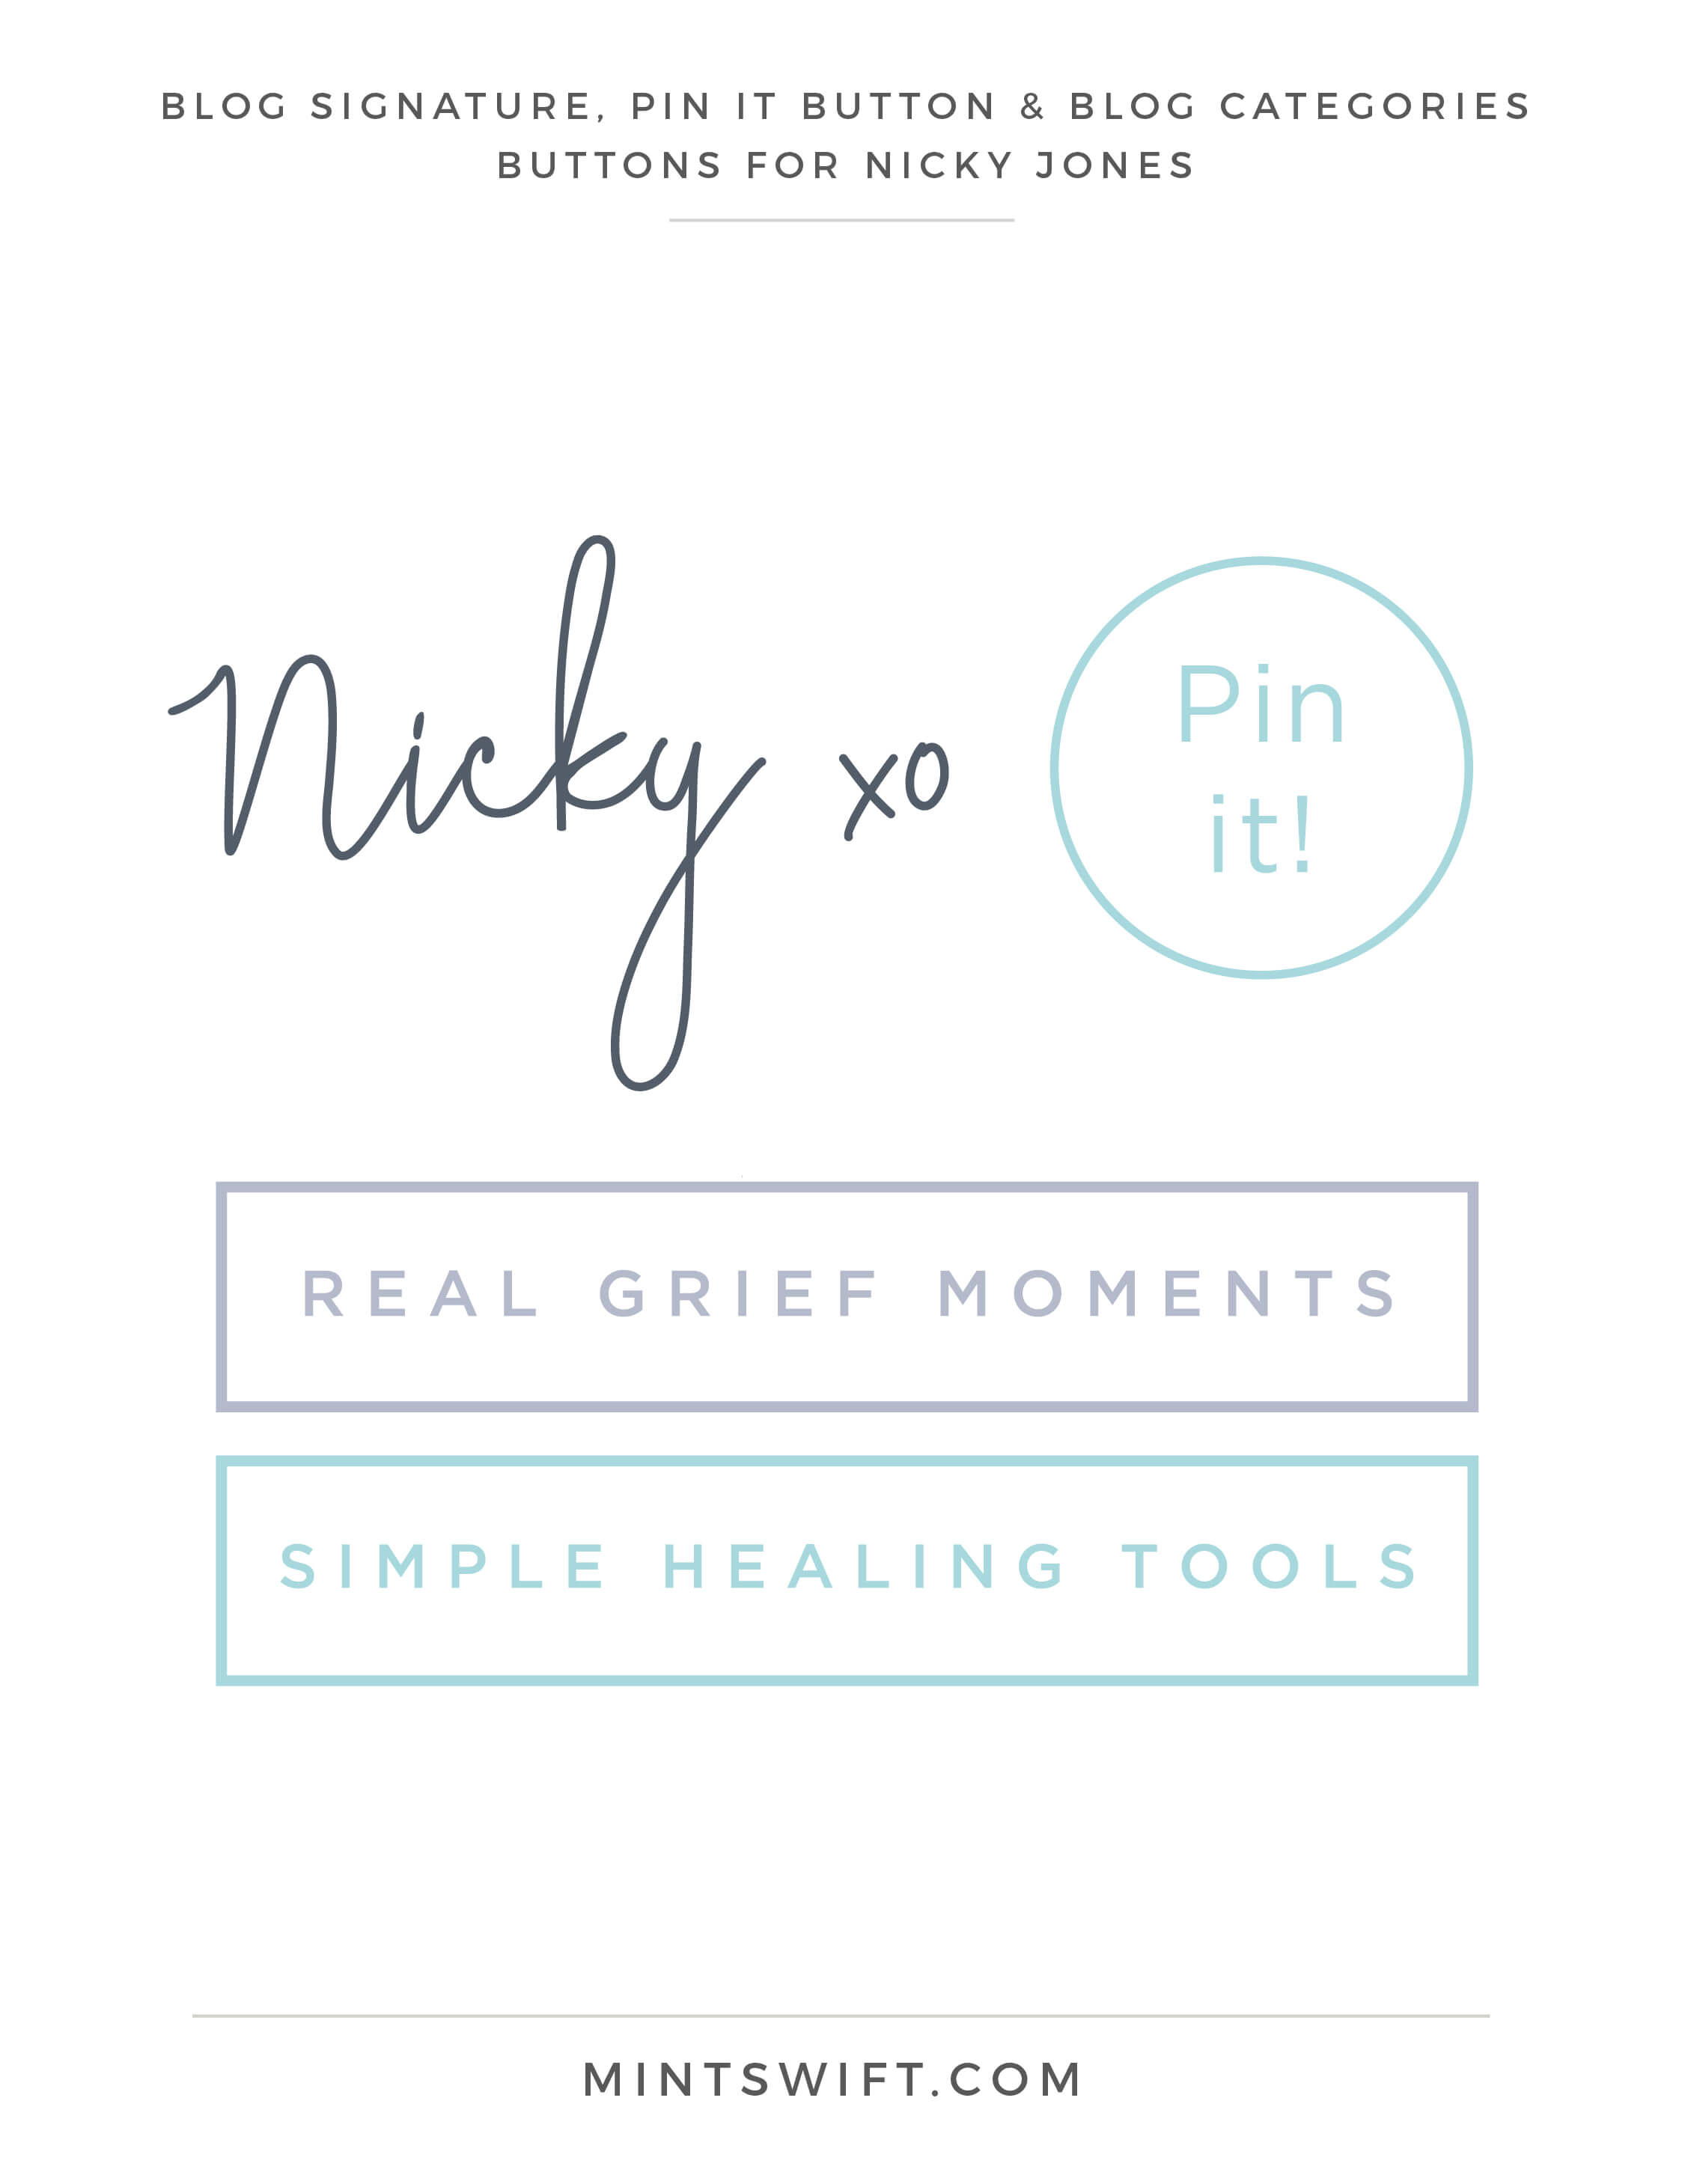 Nicky Jones - Blog Signature, Pin It Button & Blog Categories - Brand Design Package - MintSwift